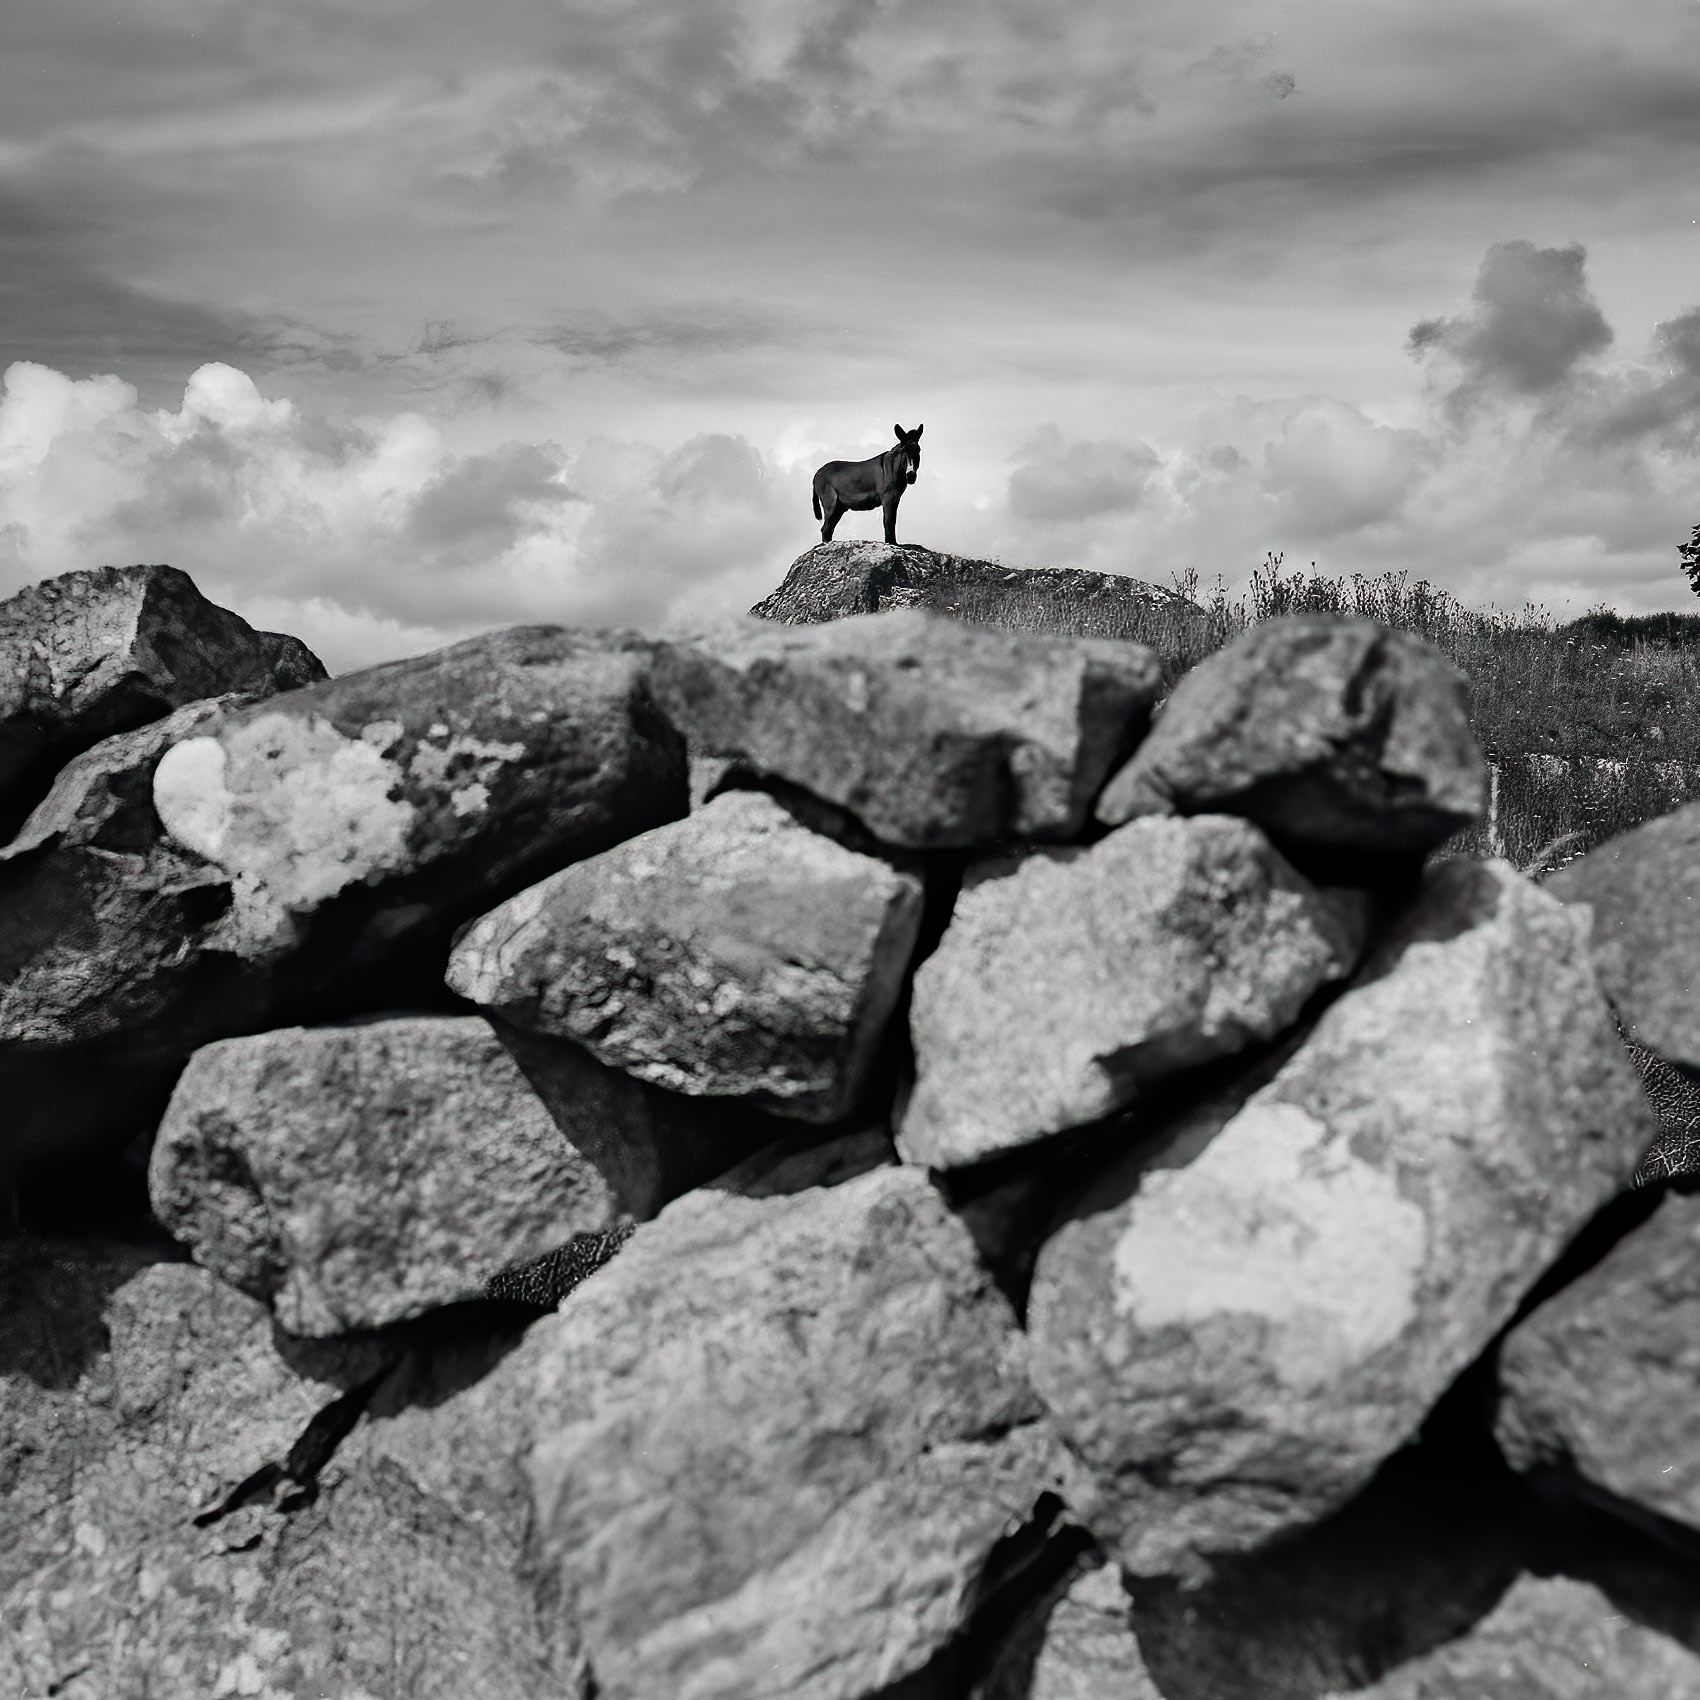 a-donkey-stands-on-a-rock-in-the-irish-countryside-near-cork-ireland